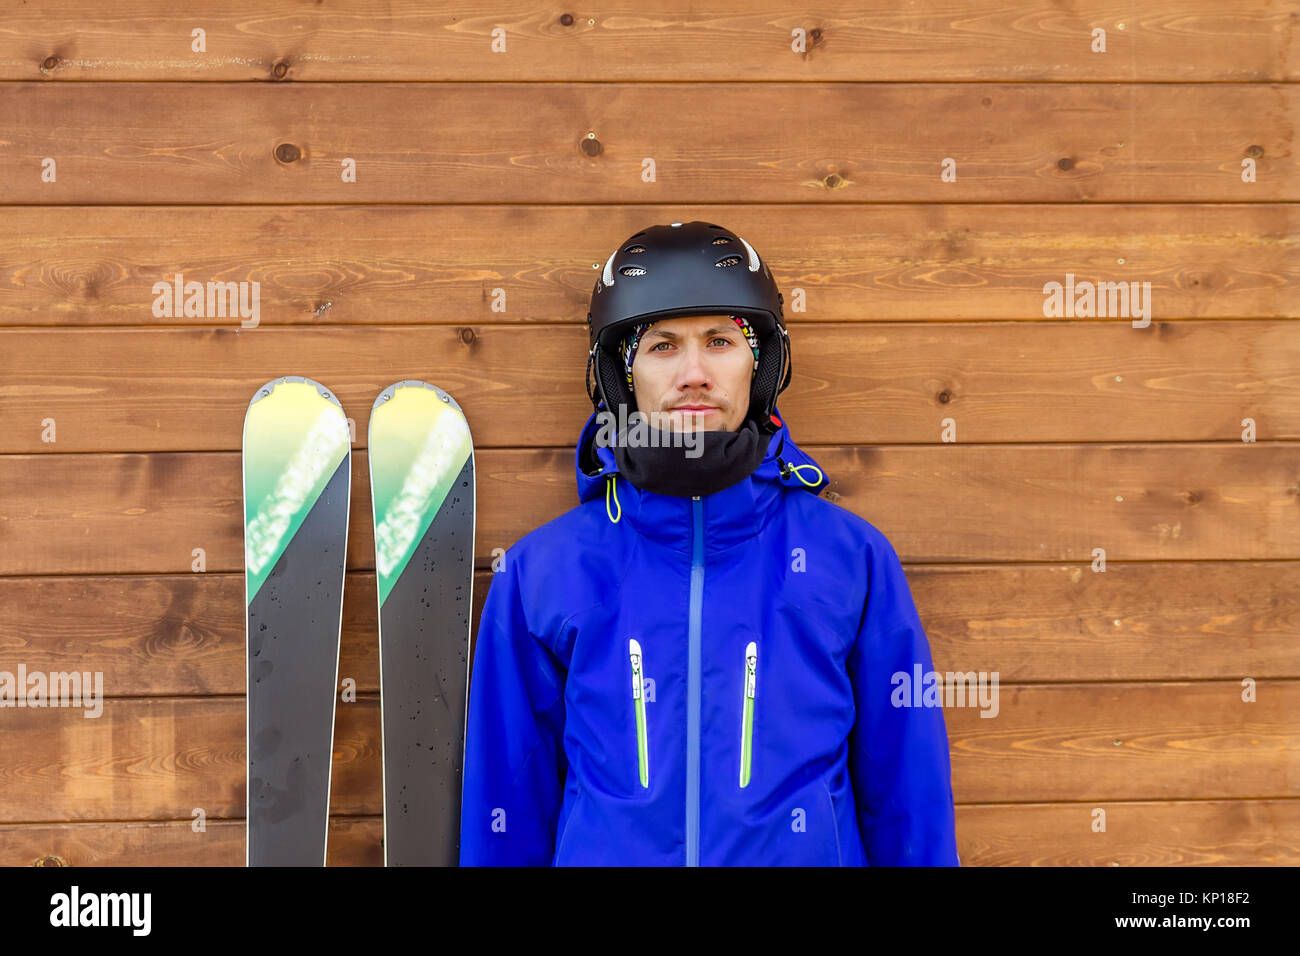 portrait man skier with skis and helmet and ski boots near wooden wall. - Stock Image